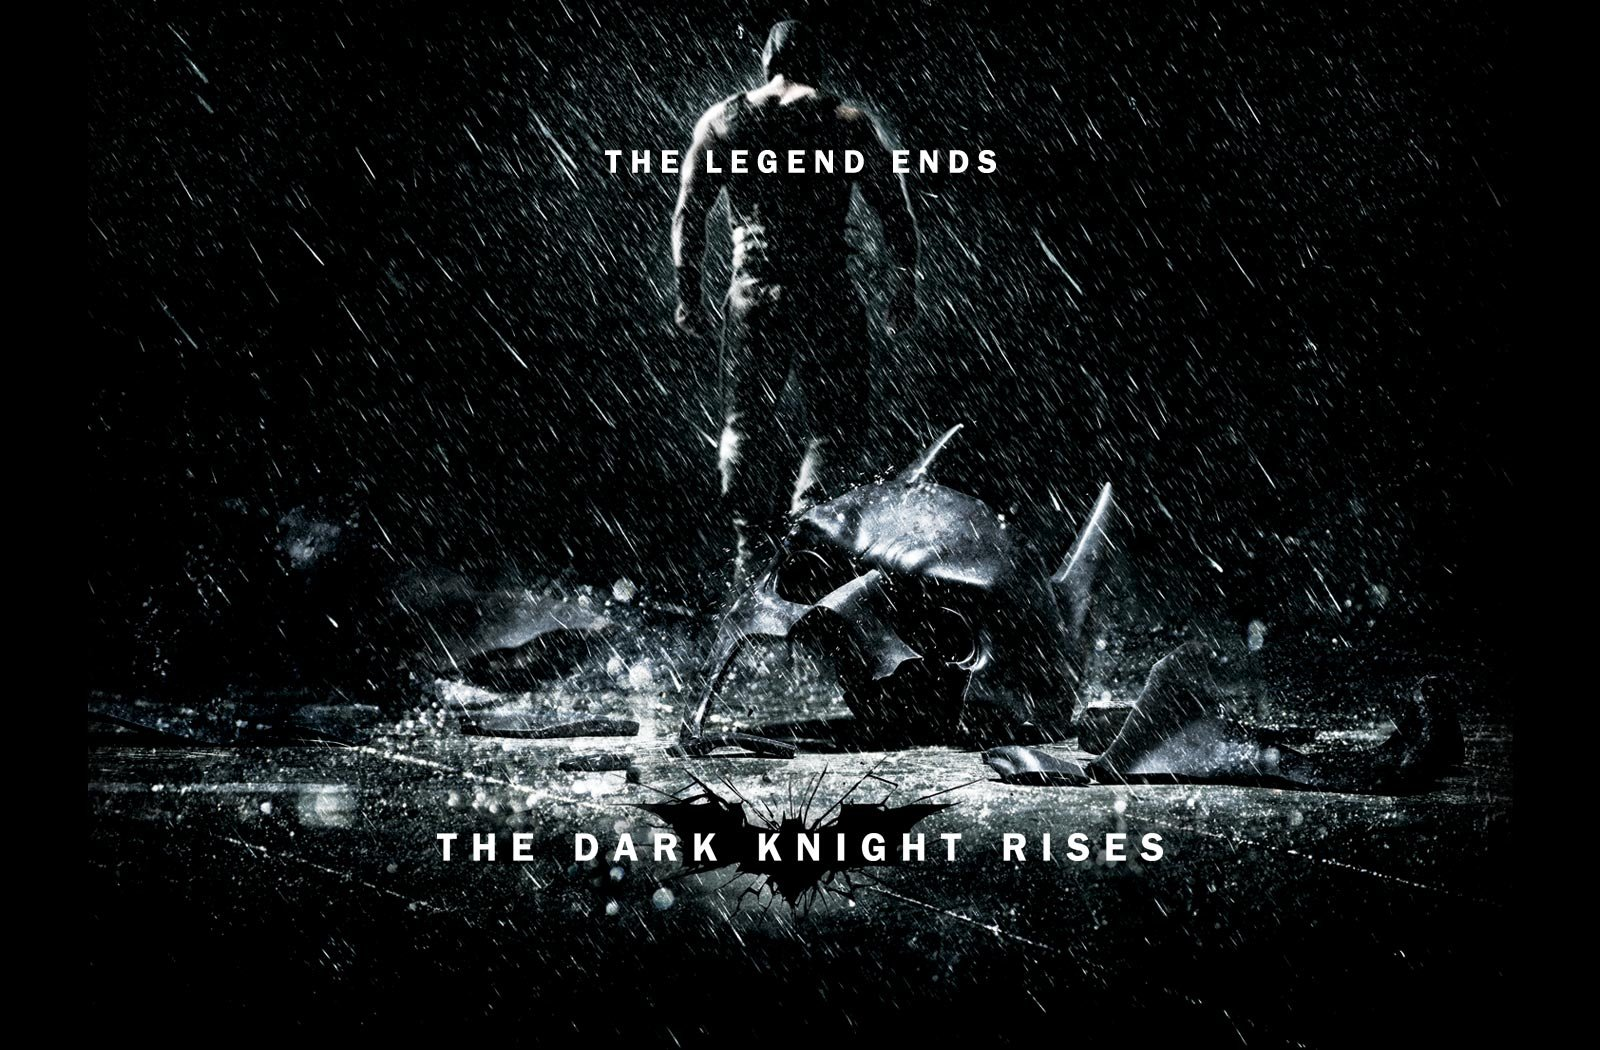 the-dark-knight-rises-the-legend-ends-wallpaper.jpg